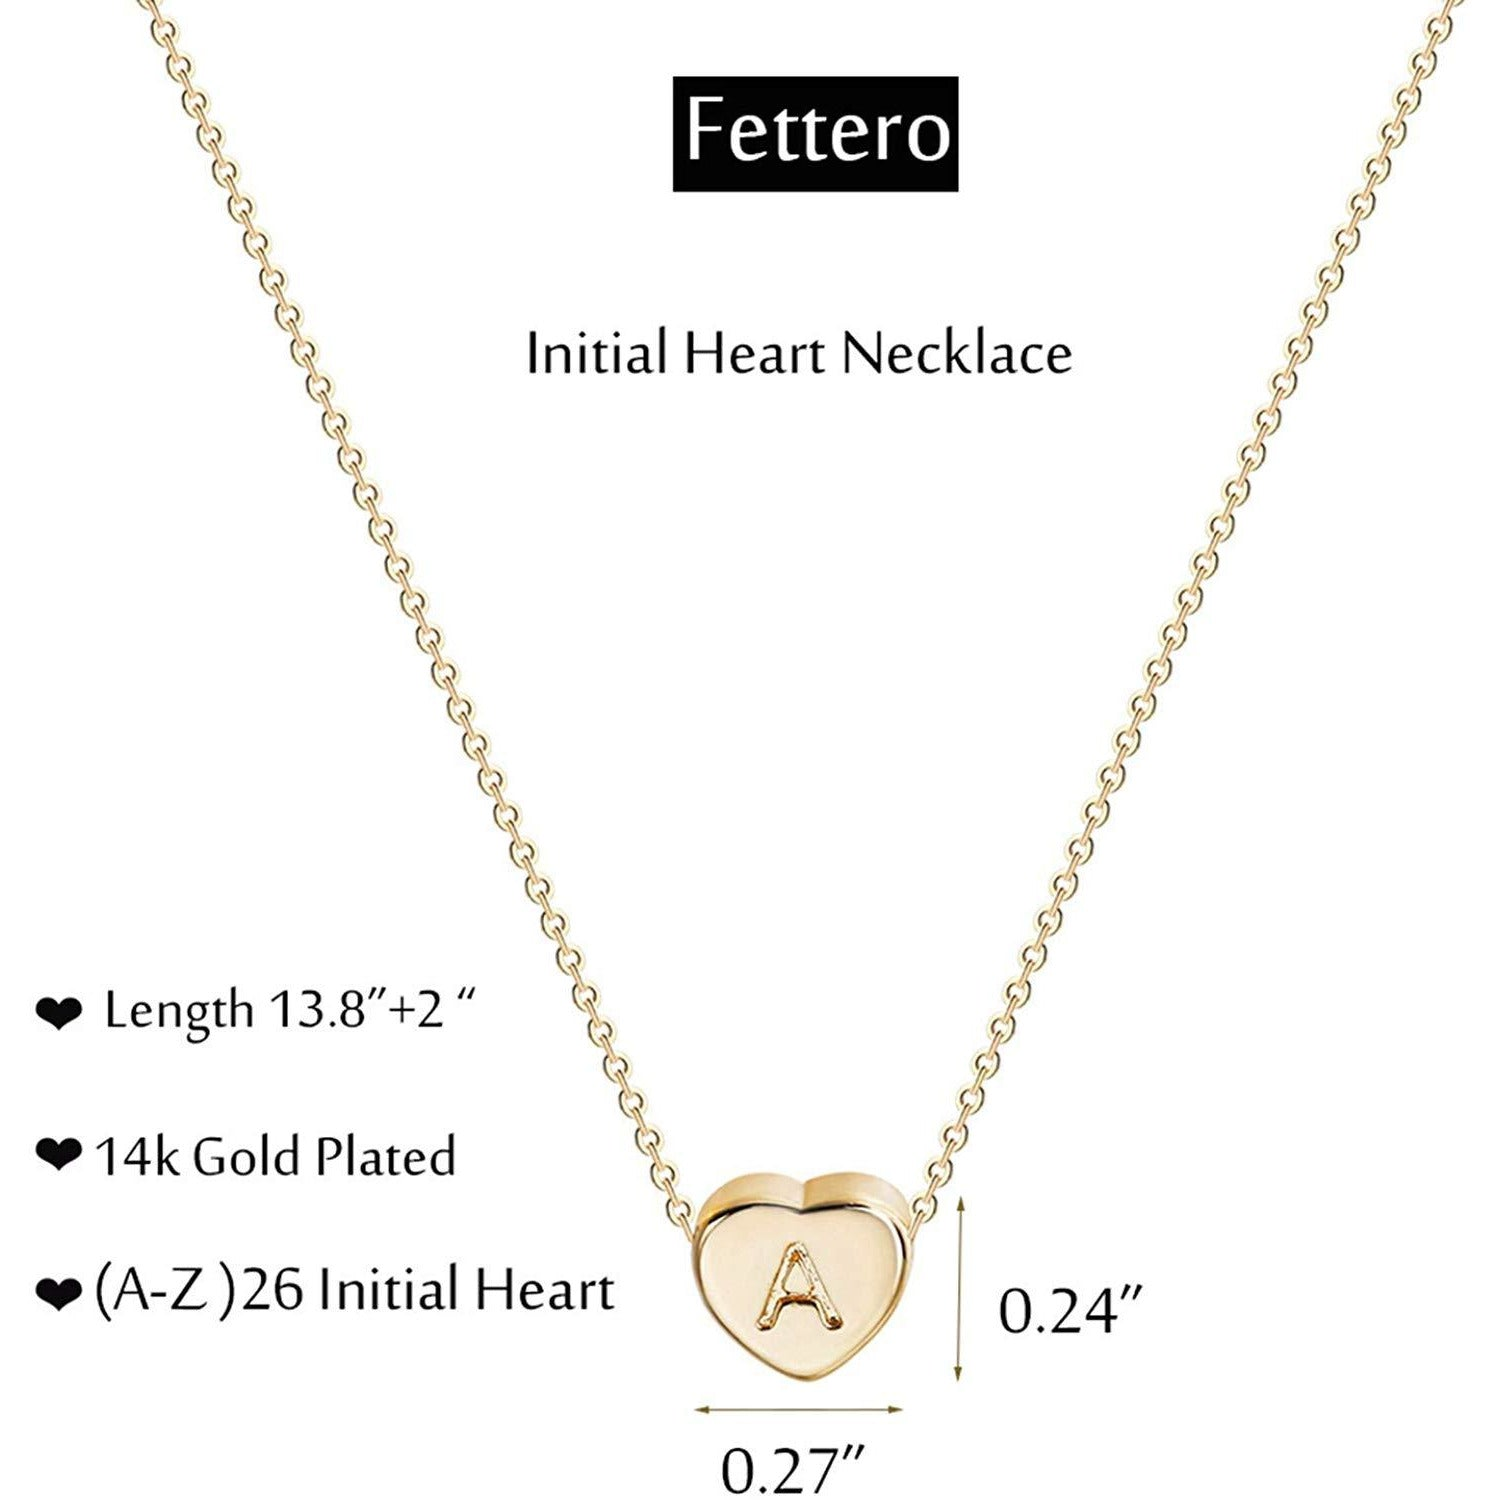 Tiny Gold Initial Heart Necklace-14k Gold Filled Handma... - TODOENCARGO.COM